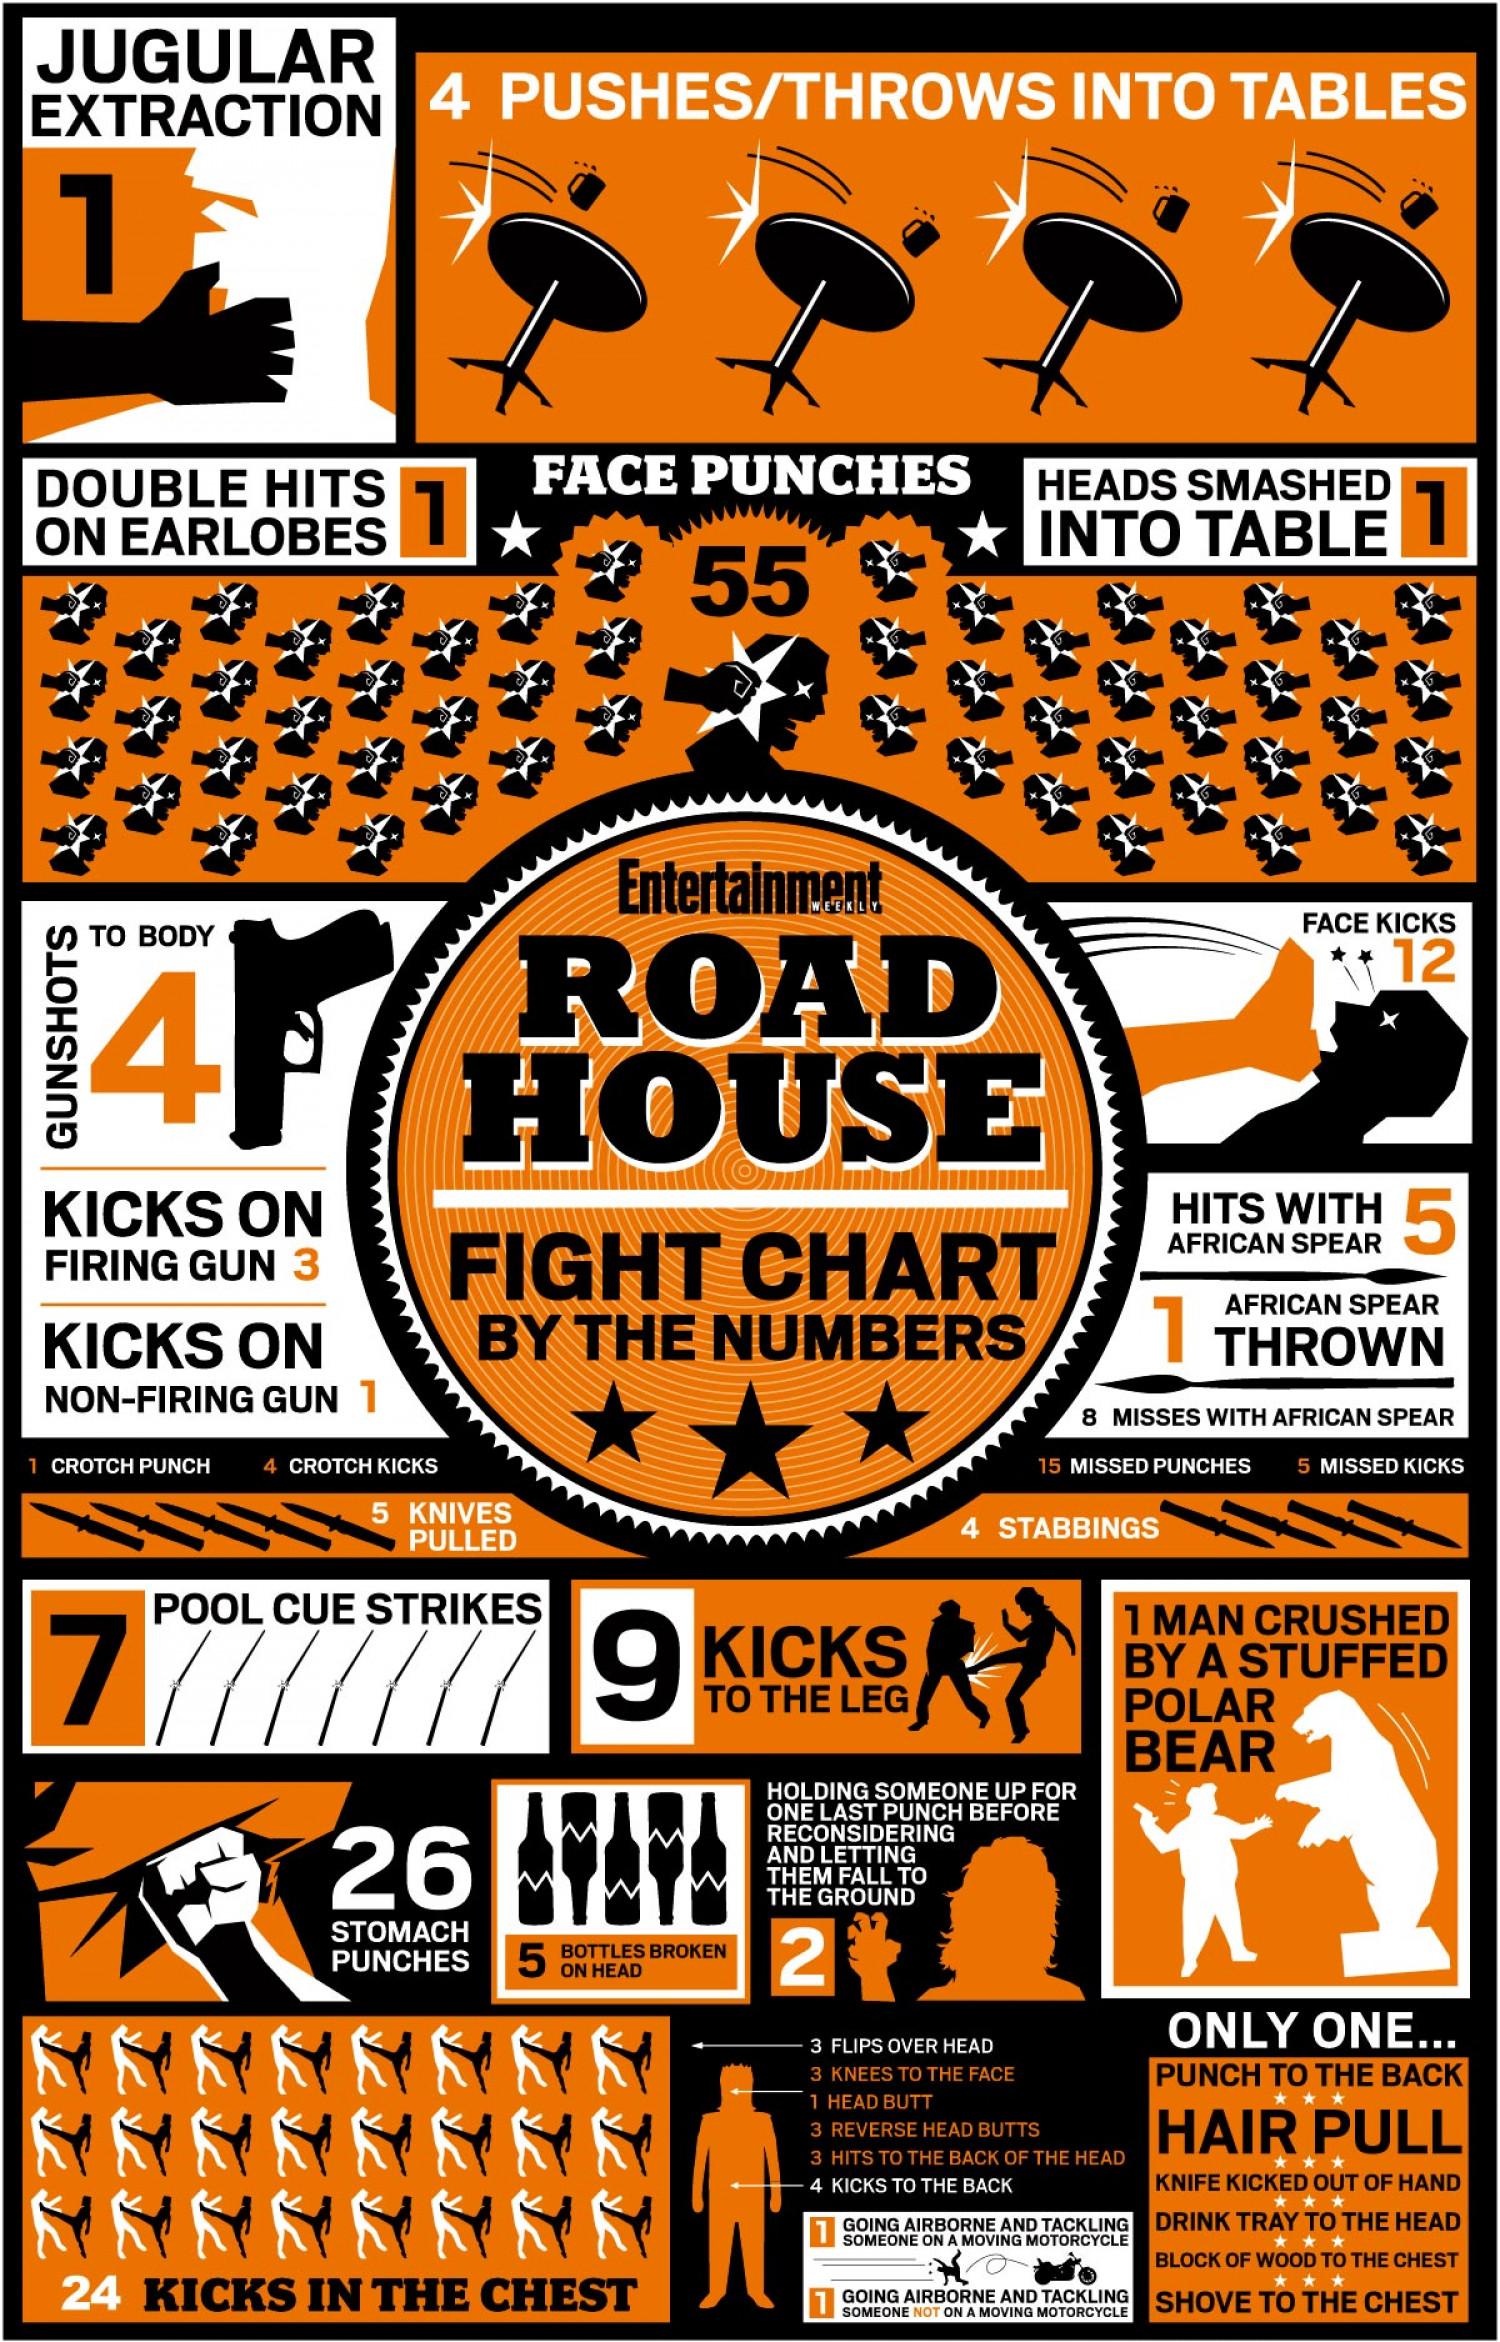 Road House Fight Chart Infographic